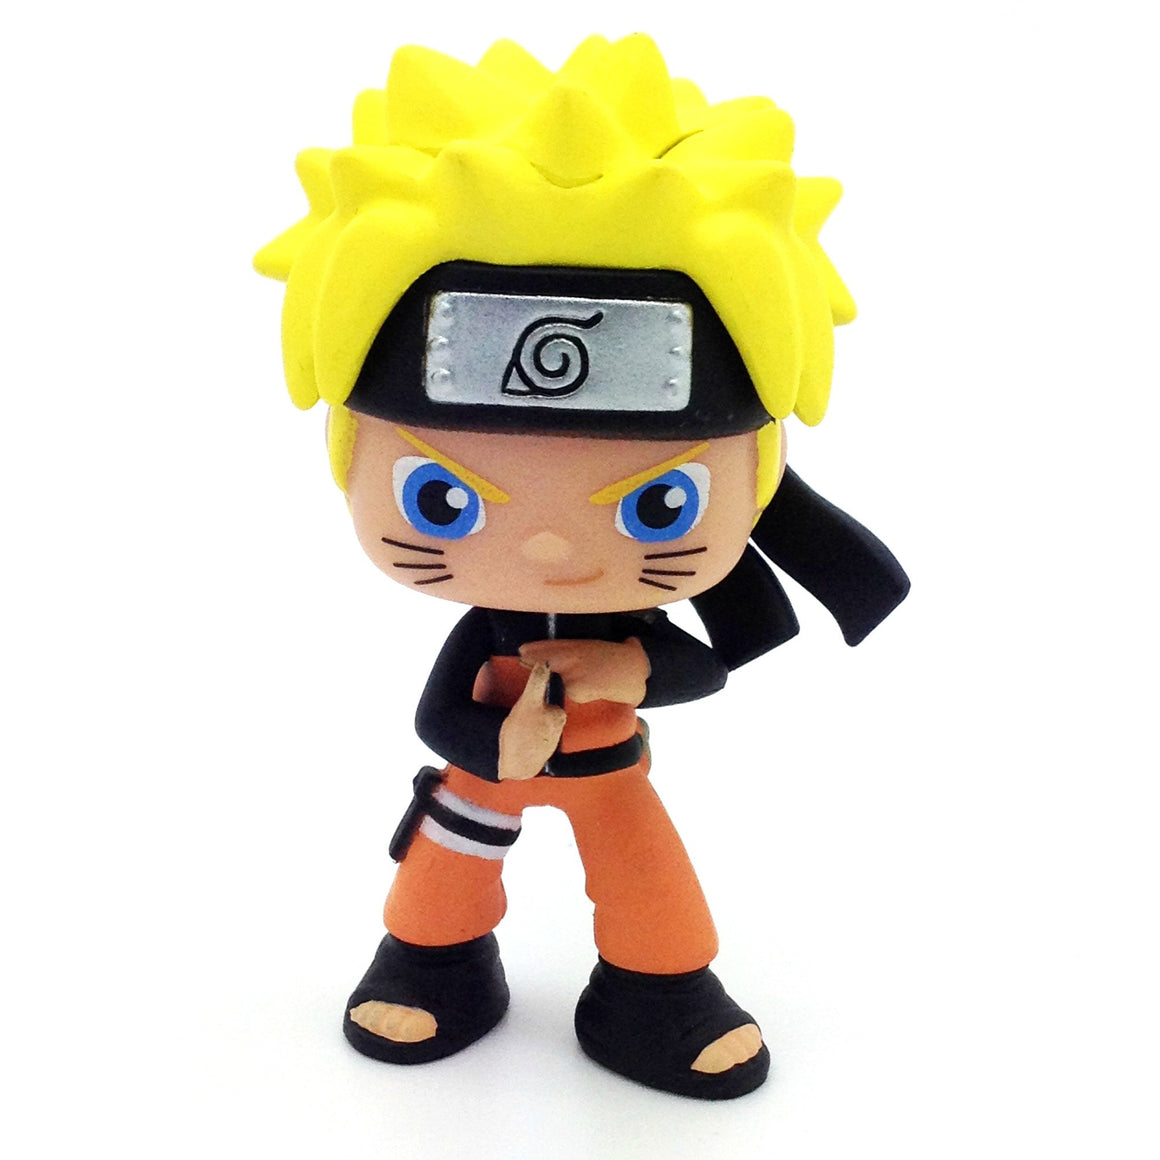 Shonen Jump Best of Anime Series 2 Blind Box - Naruto - Mindzai  - 1